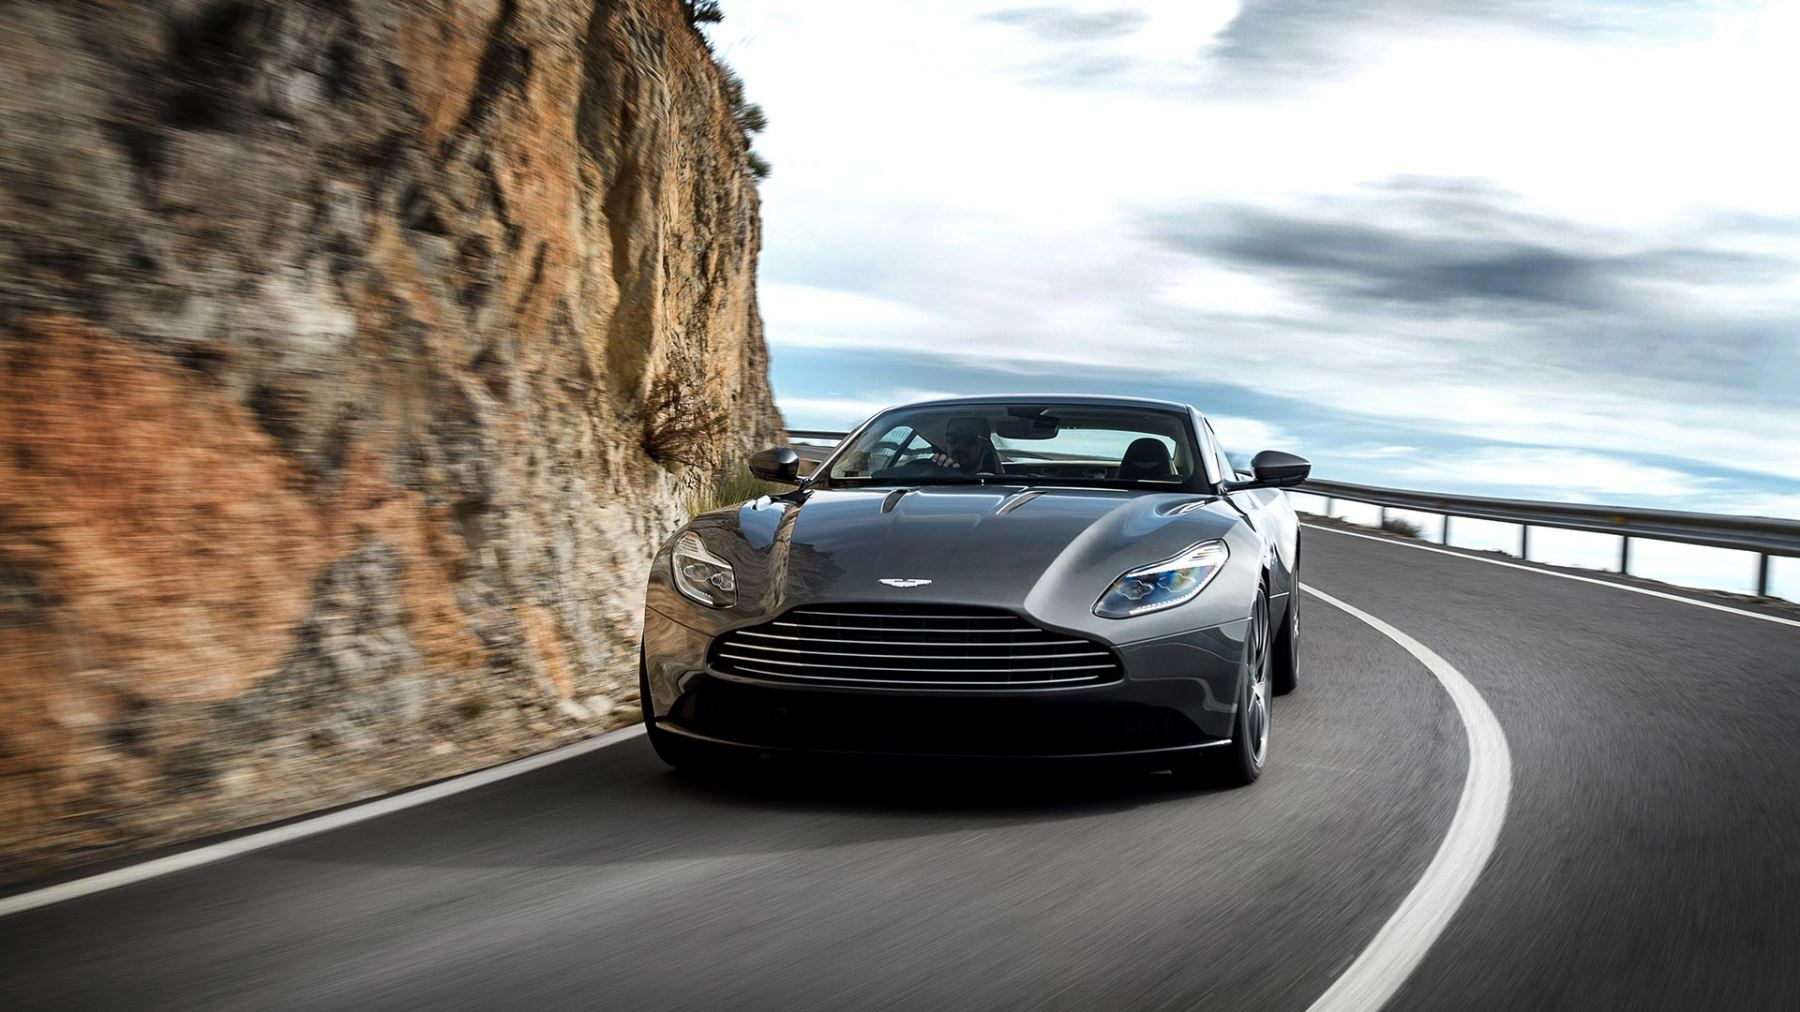 Aston Martin DB11 V12 with 5 years free servicing* image 6